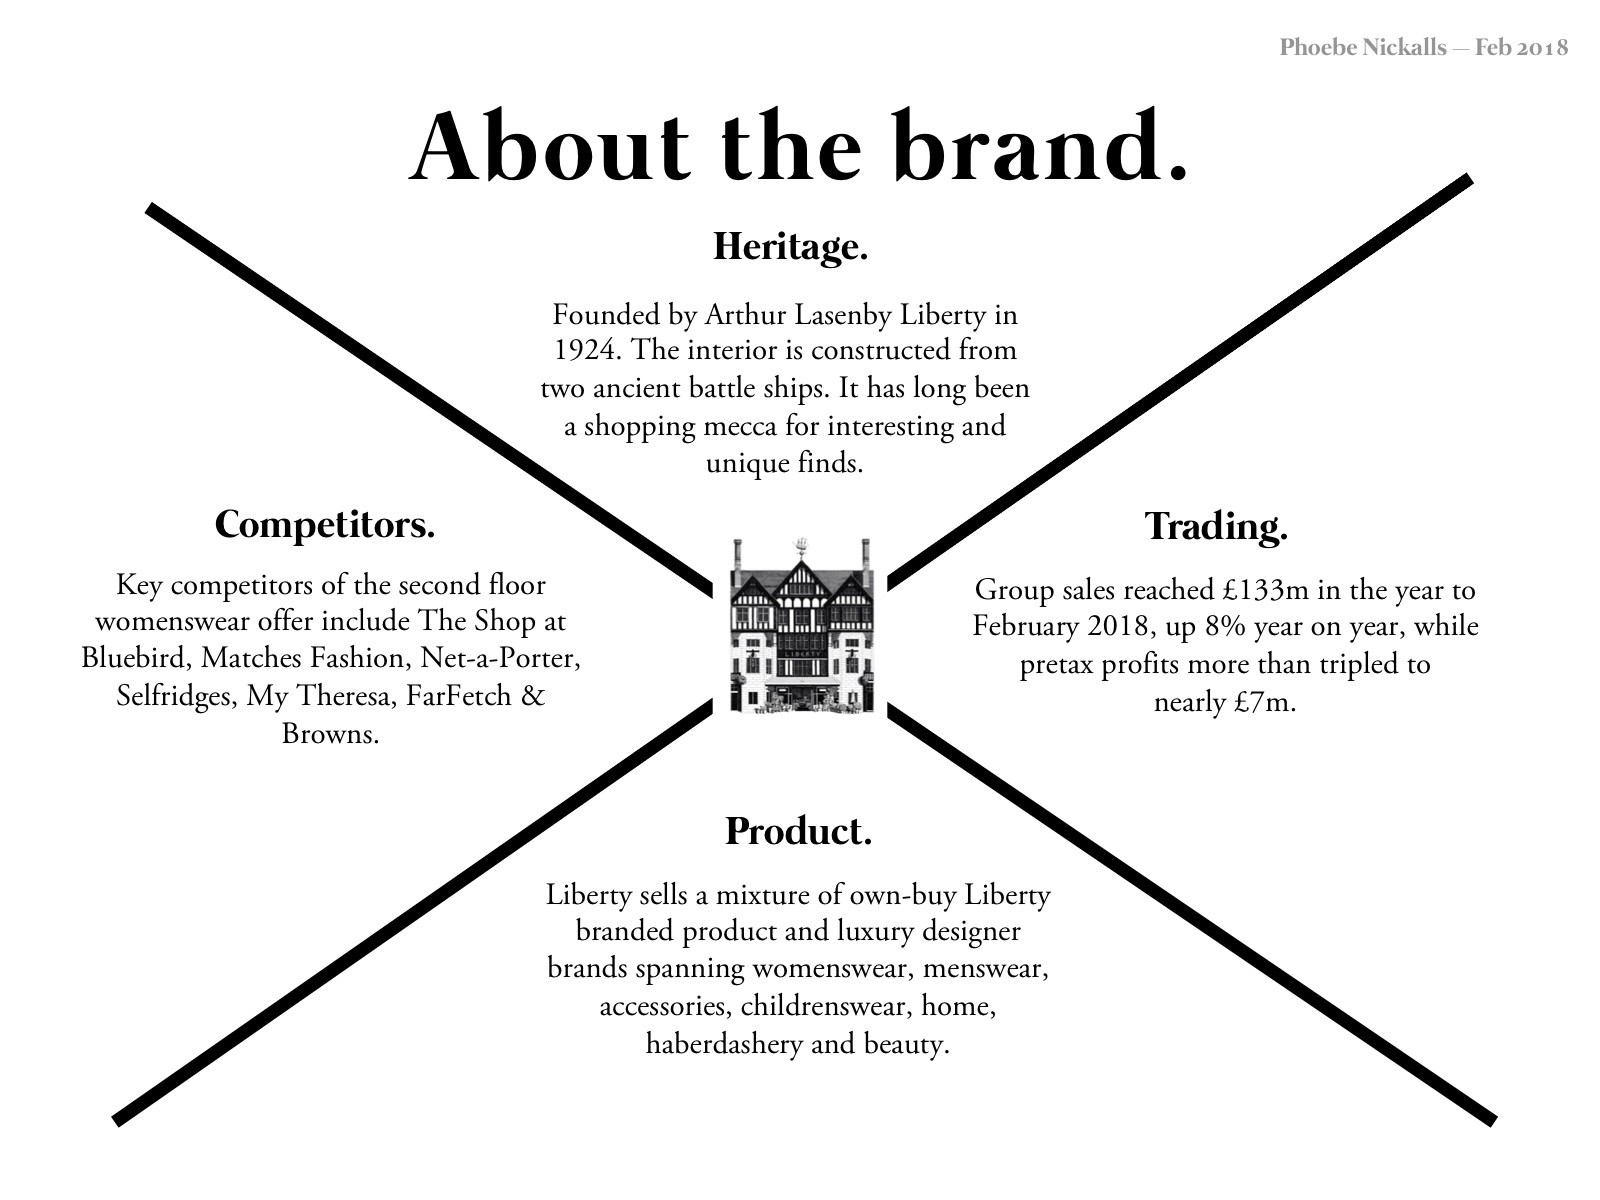 Liberty London Swot Analysis By Phoebe Nickalls Phoebe Nickalls Medium